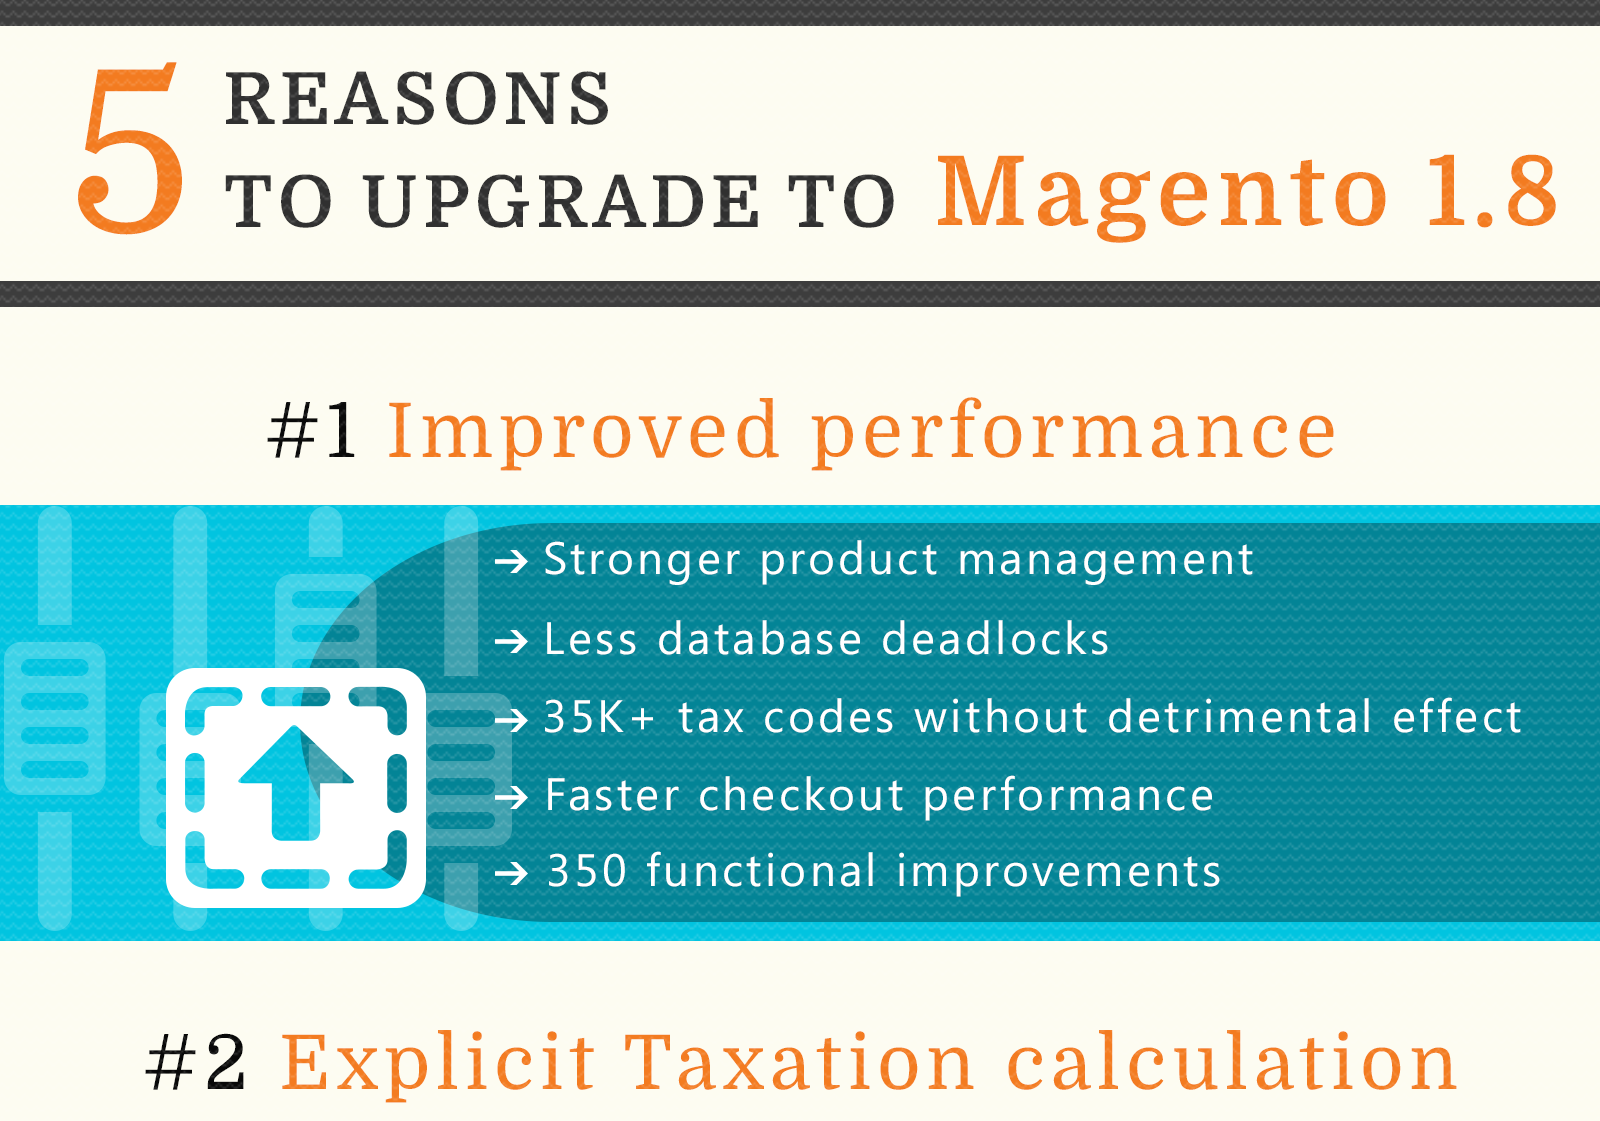 Infographic: 5 reasons for upgrading to Magento 1.8